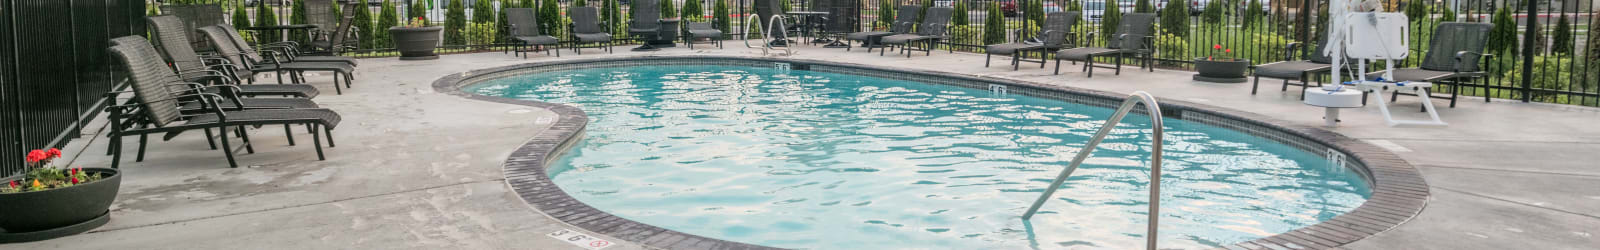 Amenities at Keizer Station Apartments in Keizer, Oregon